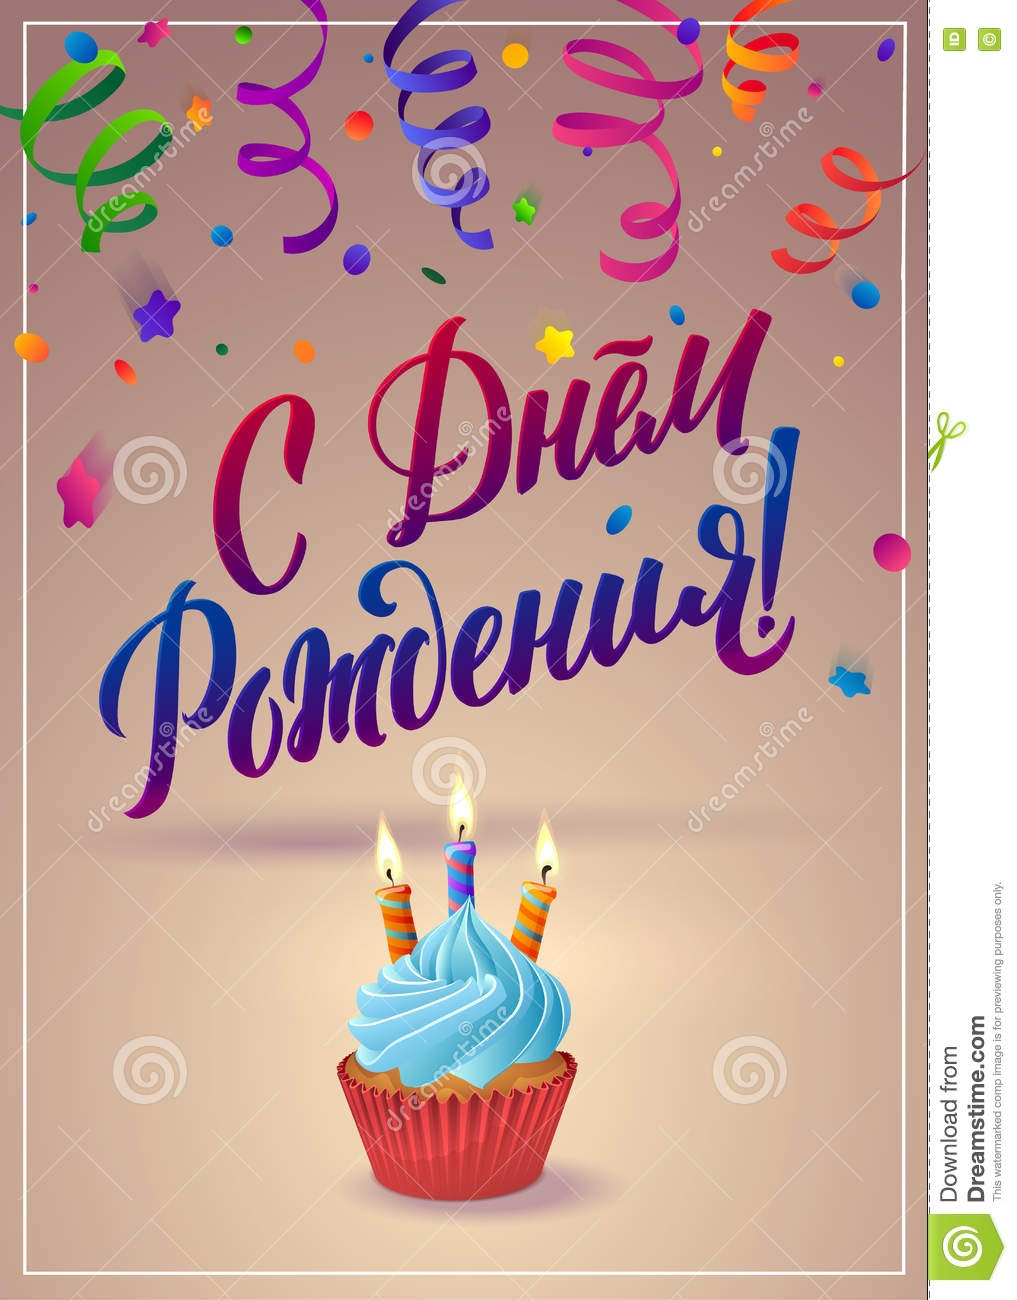 96+ Funny Russian Birthday Cards - Love Cards Funny Card Greeting - Free Printable Russian Birthday Cards